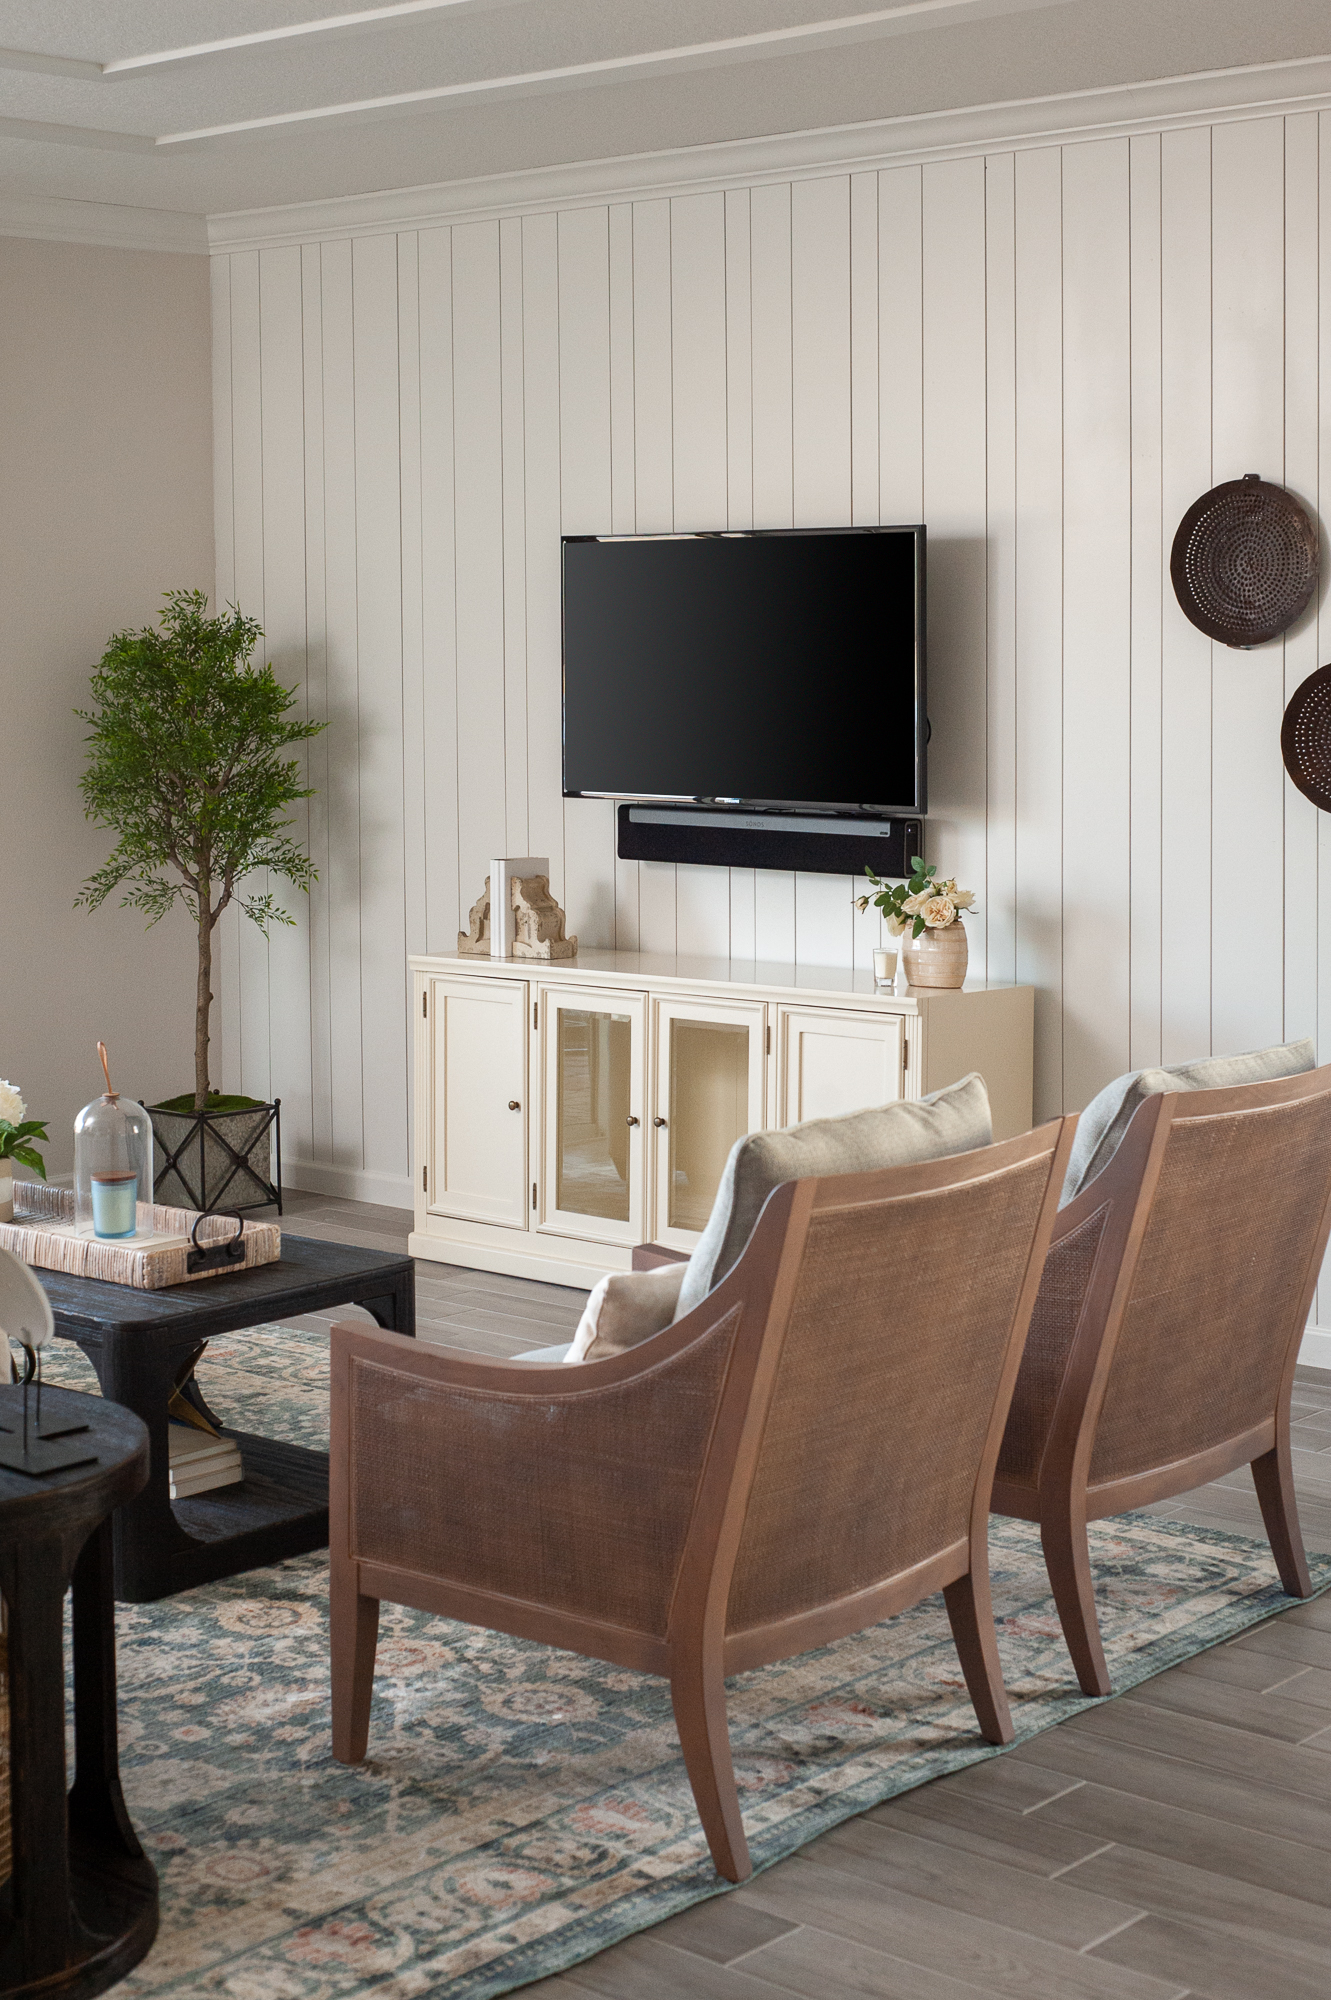 Micamy_Interior Designer_Design_Interior_Model_Merchandising_Living_Room_Entertainment_Traditional_Transitional_Shiplap_McGee & Co_Ballard_Rowe.jpg